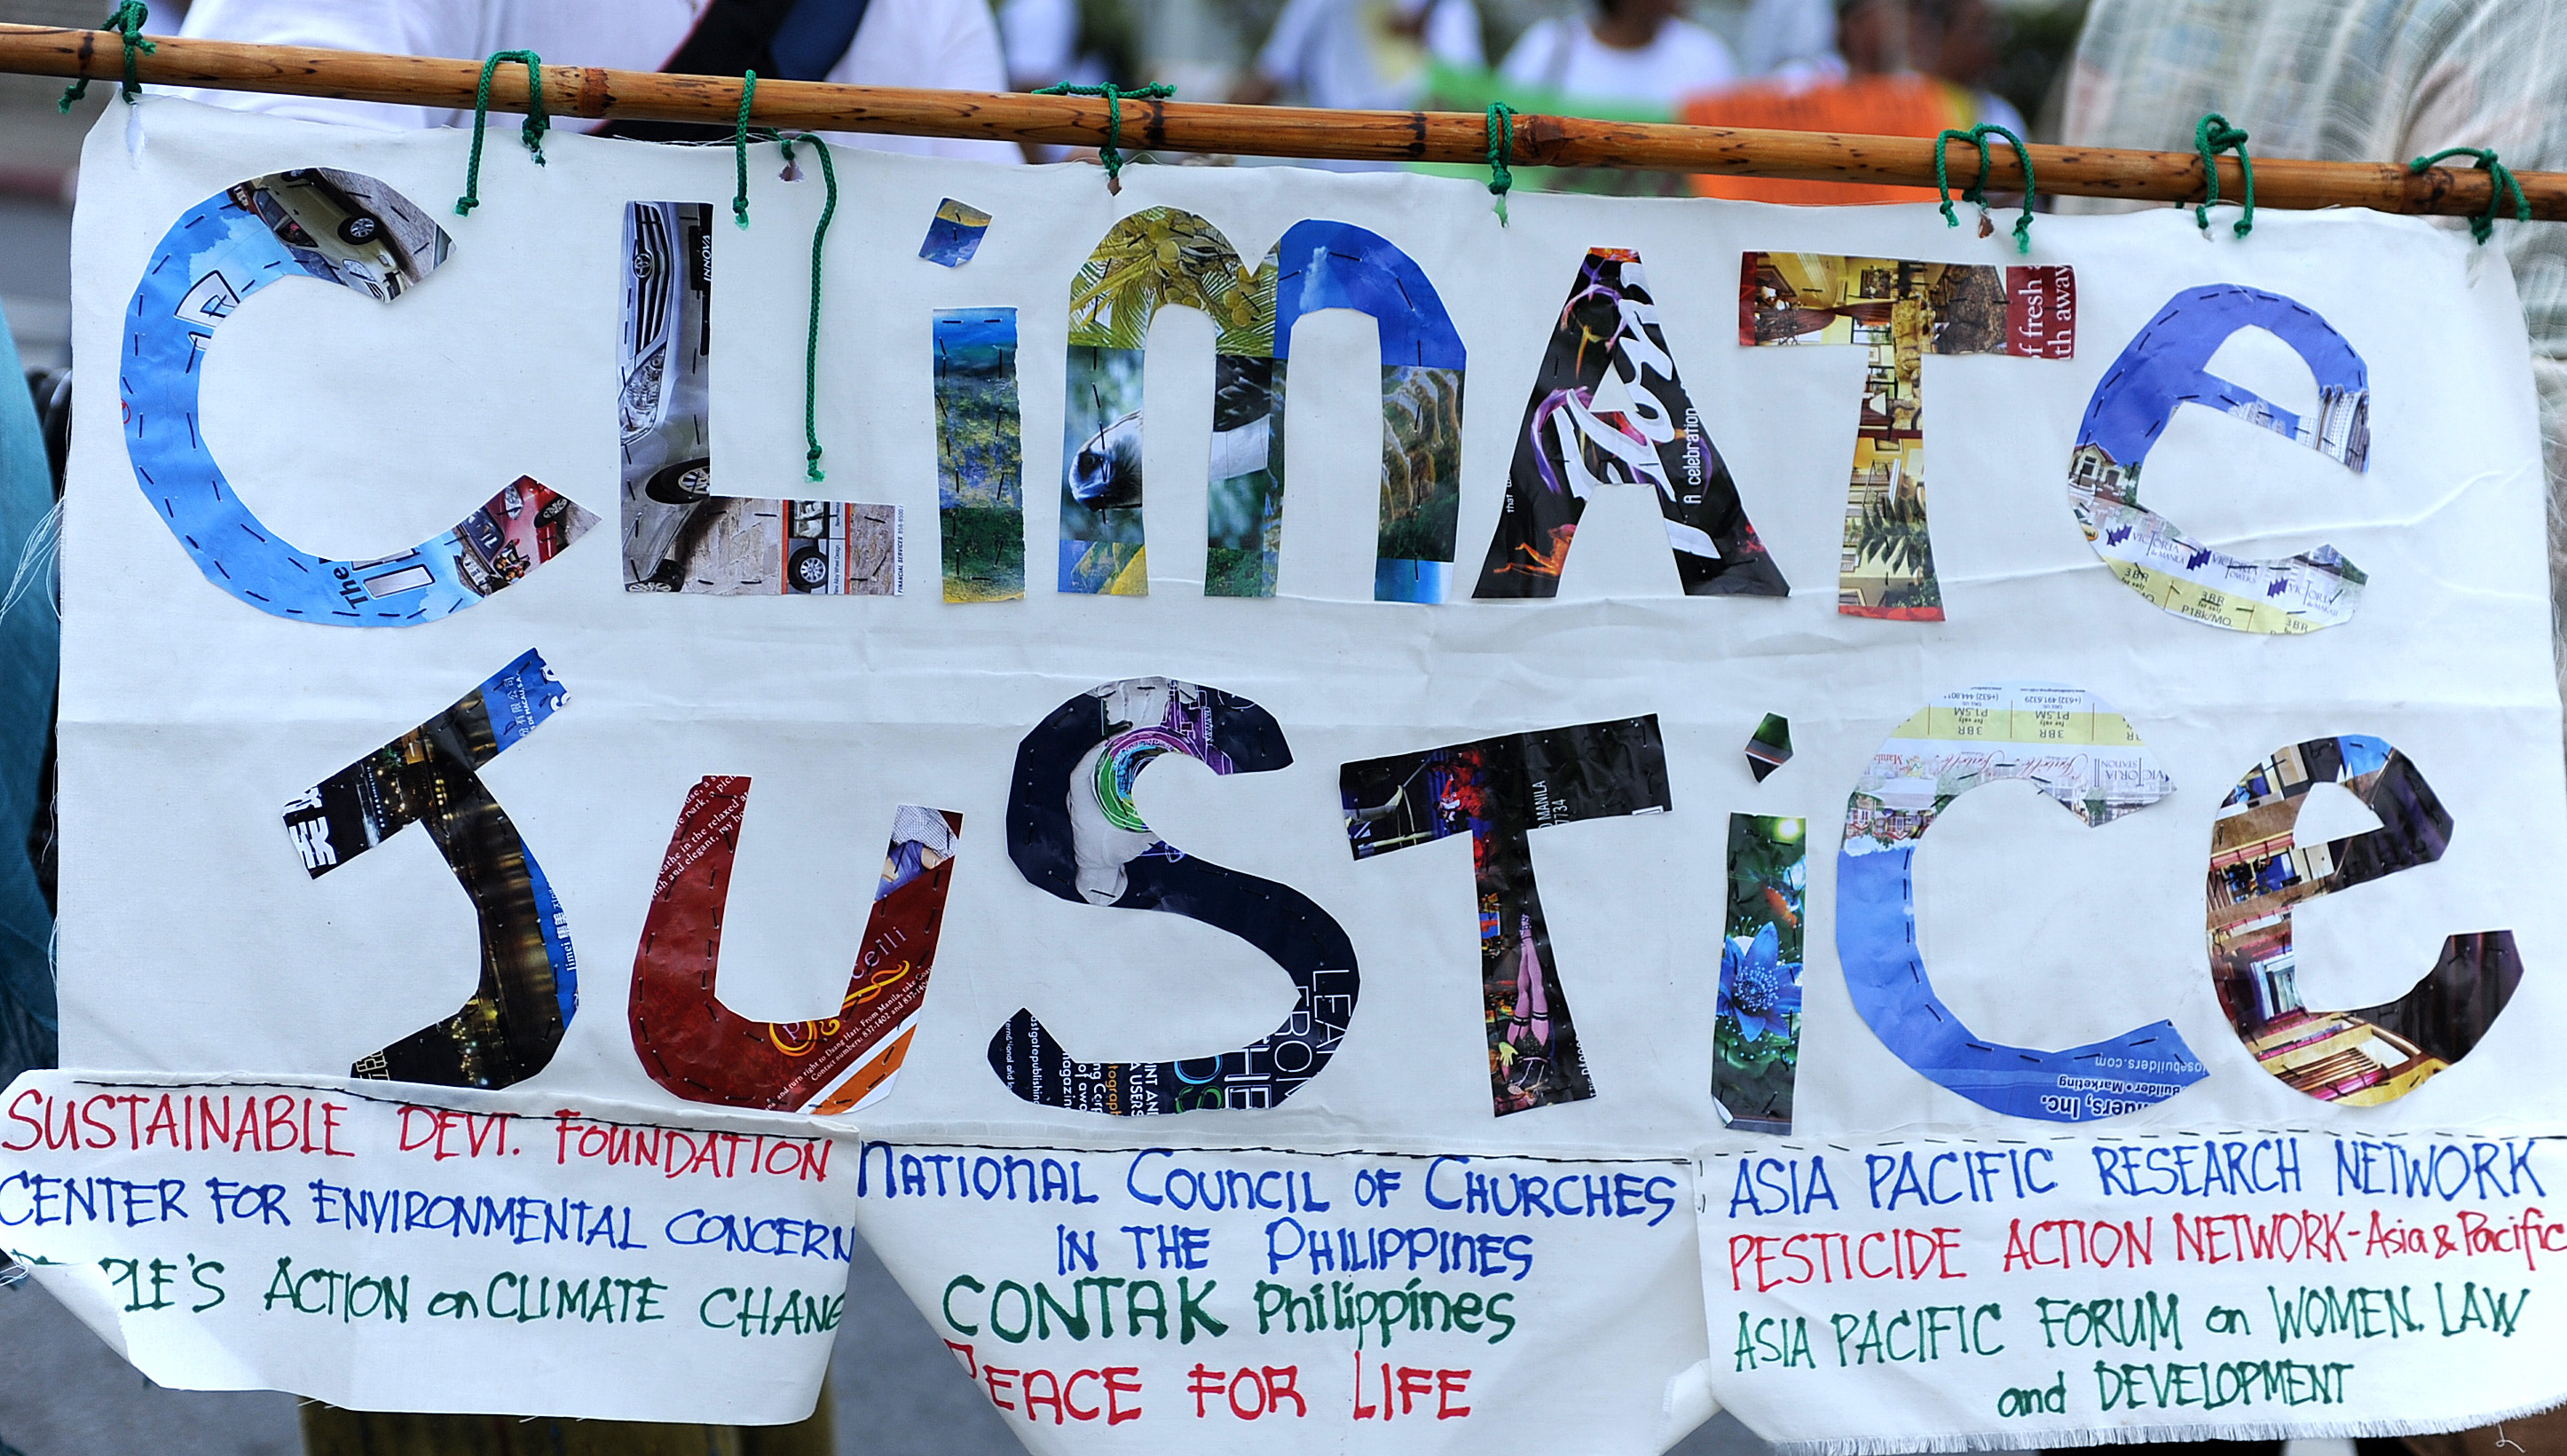 climate justice banner - Photo credit: Columnf.com